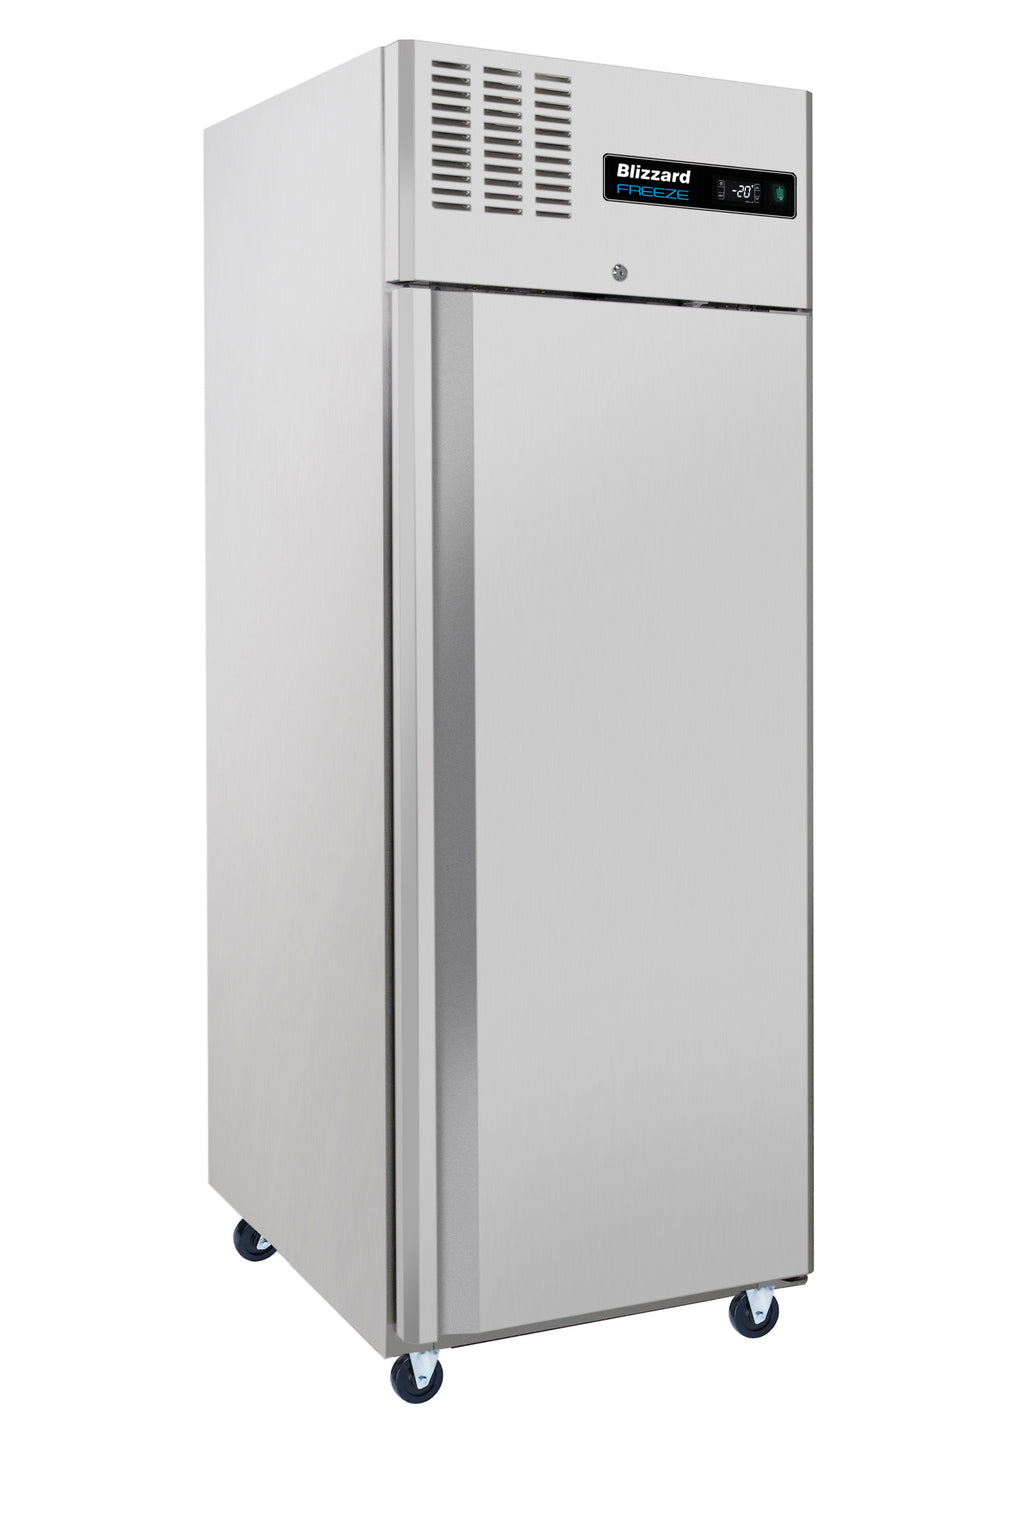 Blizzard Ventilated Gastronorm Freezer- 550 Litre Stainless Steel,Solid Door Refrigerator,Blizzard